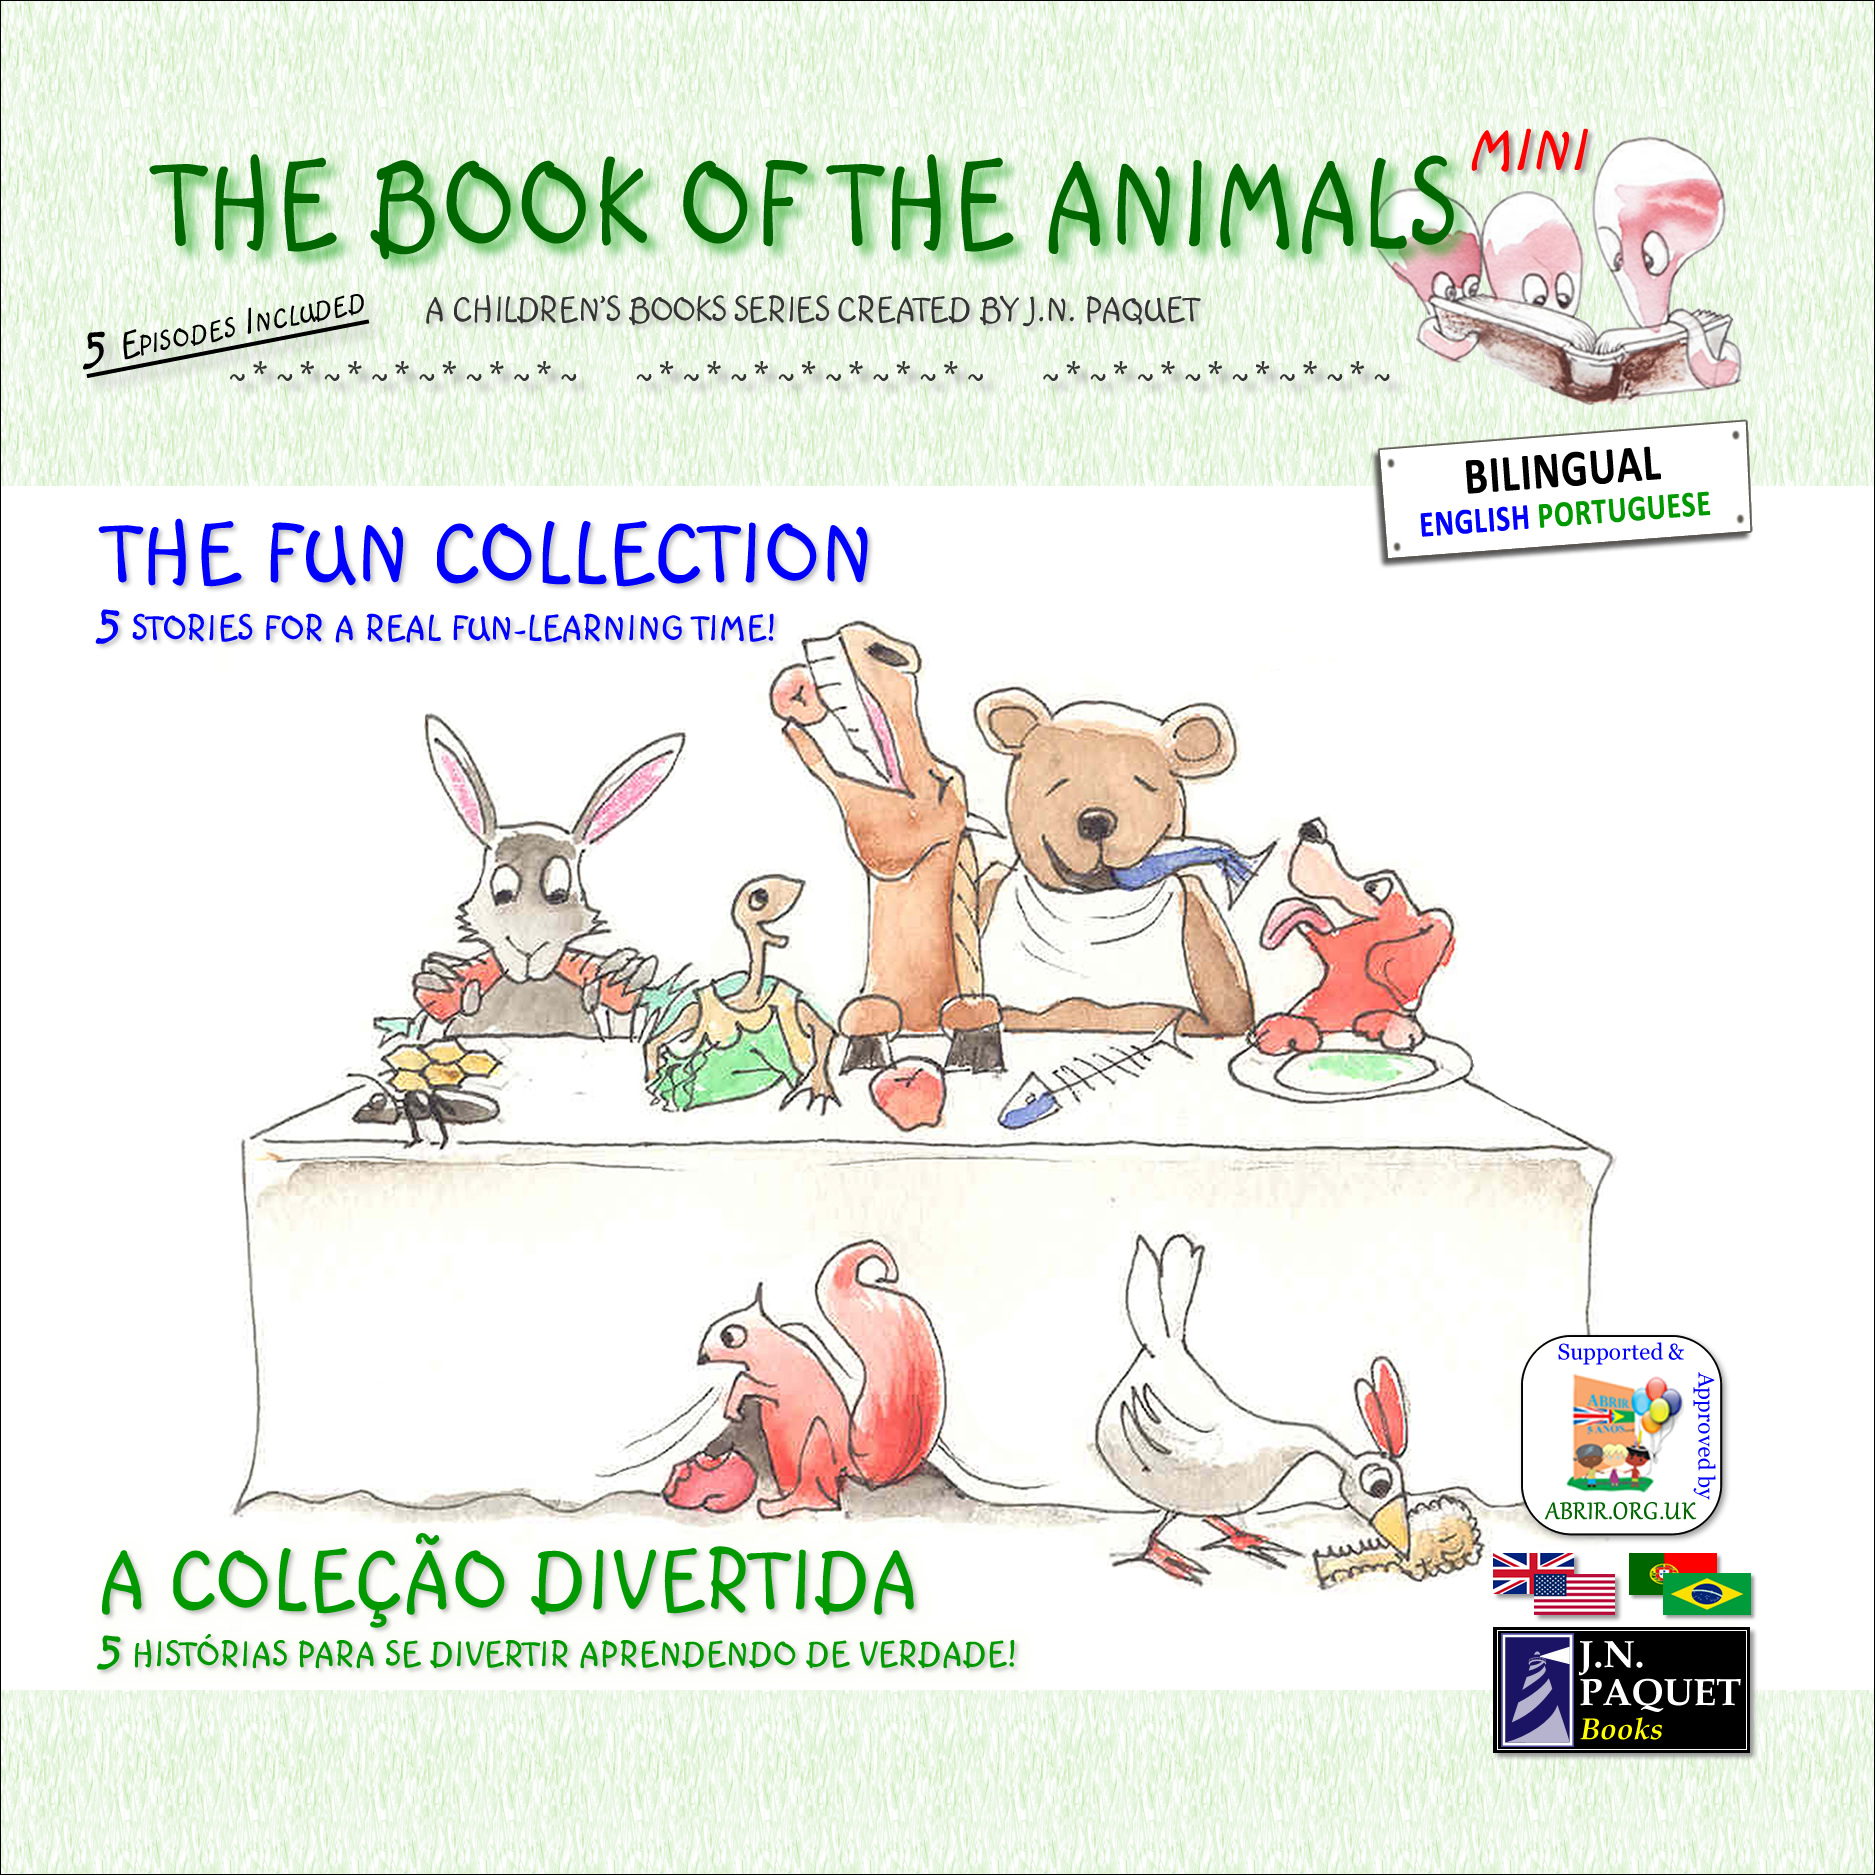 The Book of The Animals - Mini - The Fun Collection (Bilingual English-Portuguese)